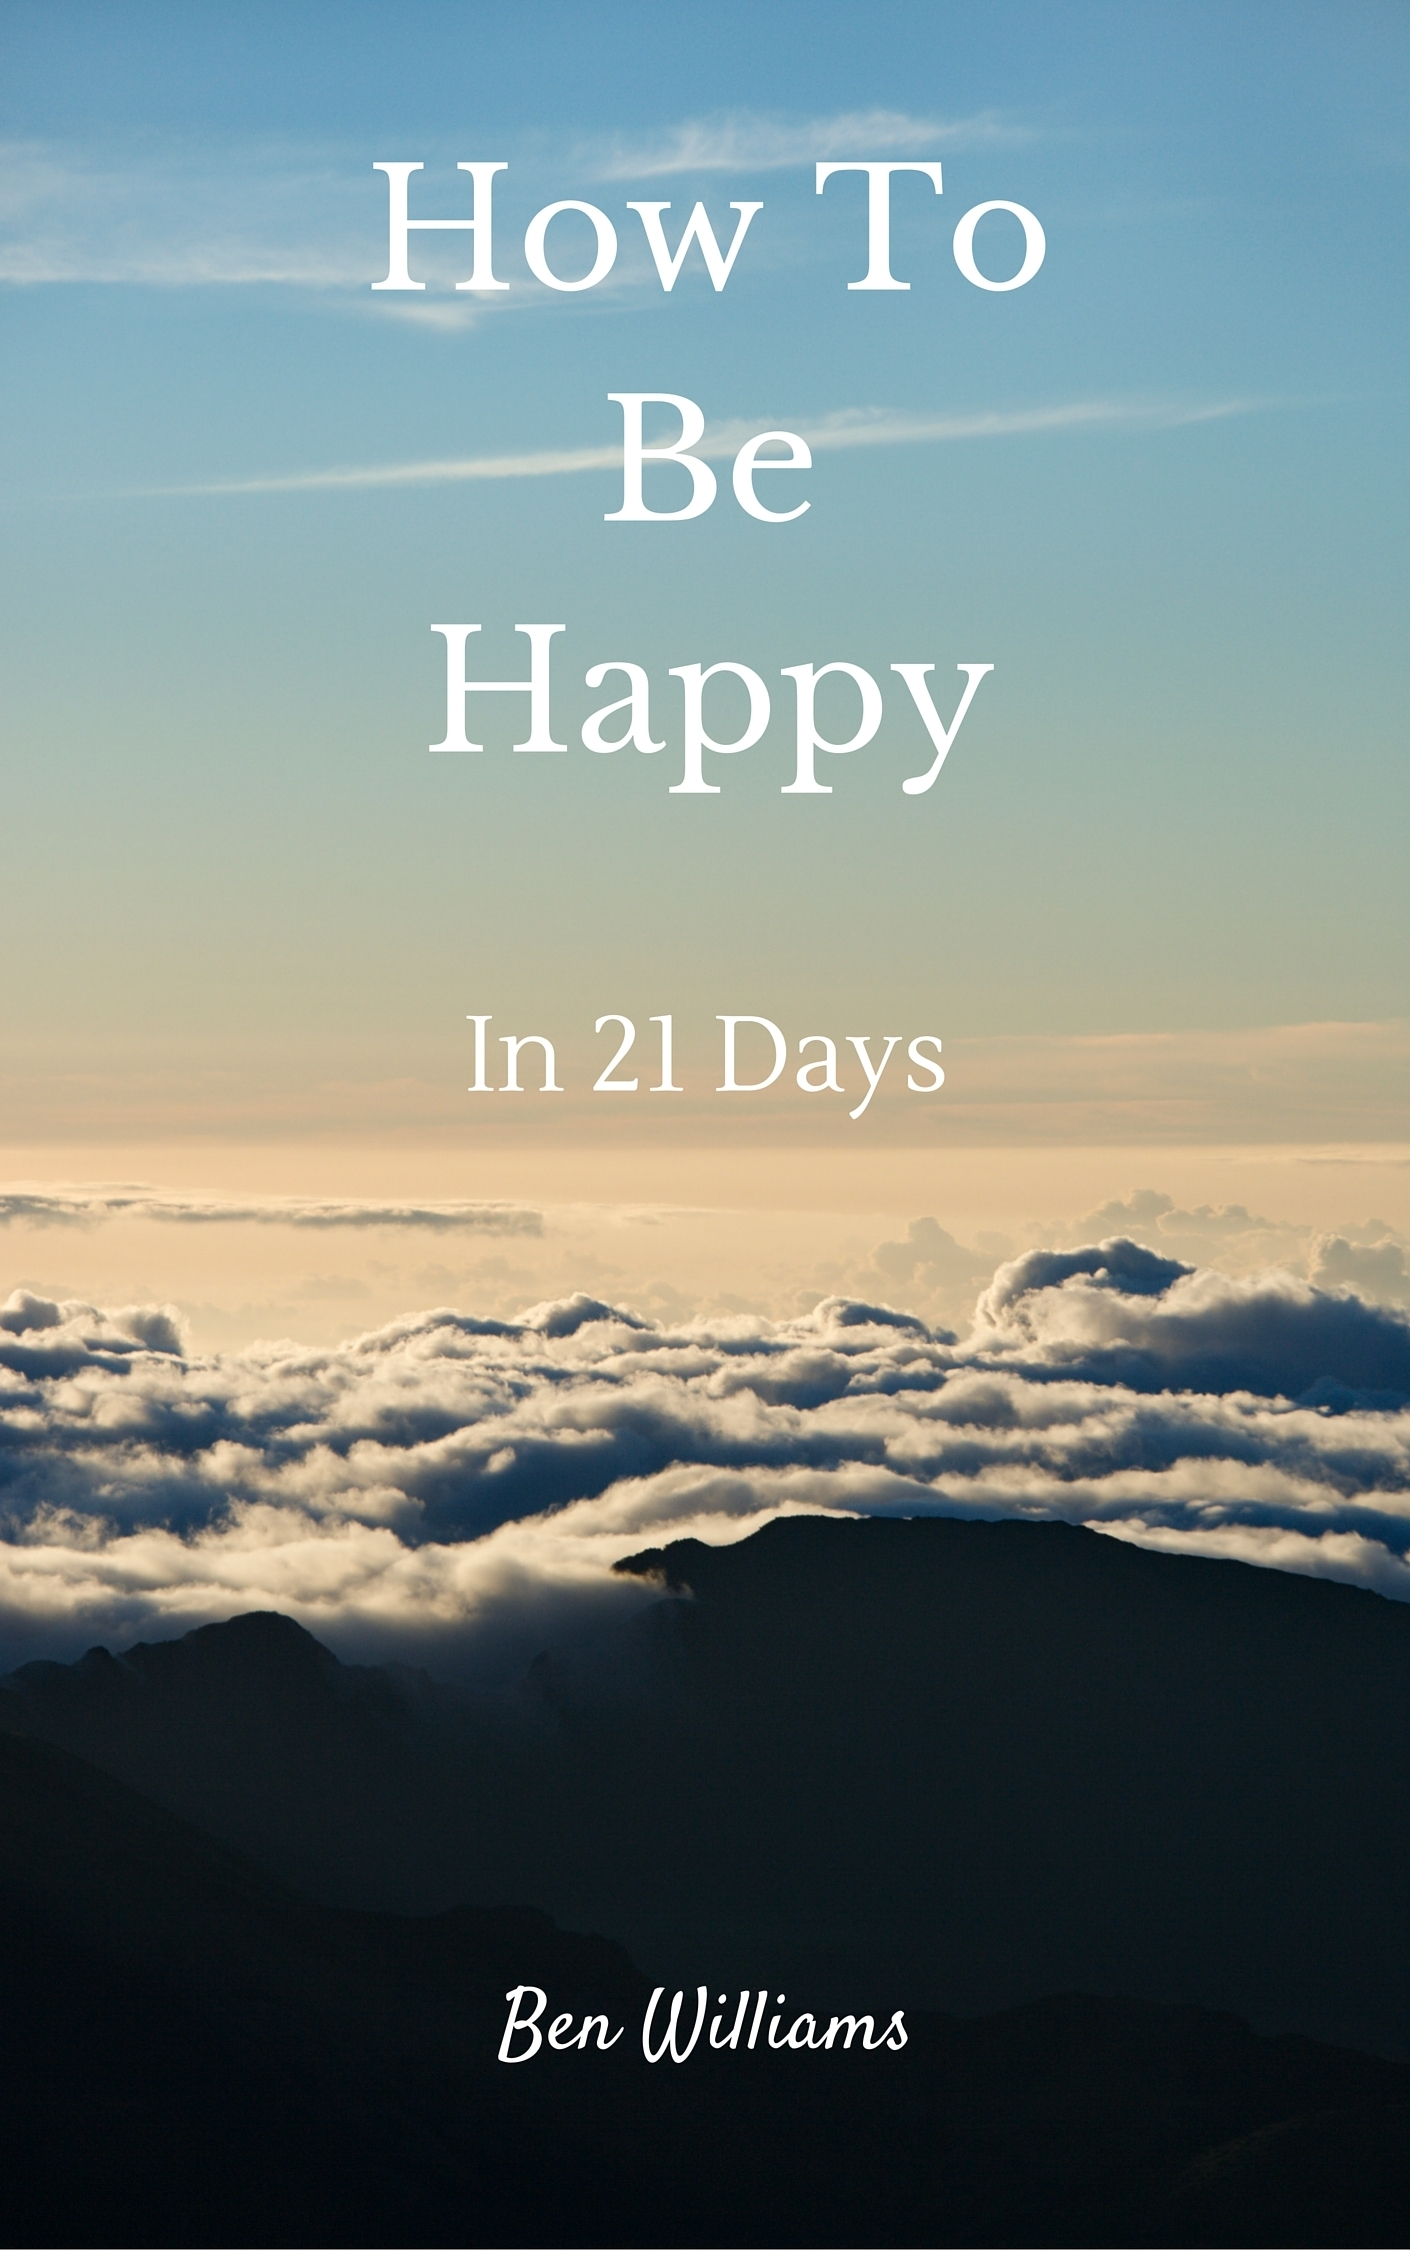 How To Be Happy In 21 Days